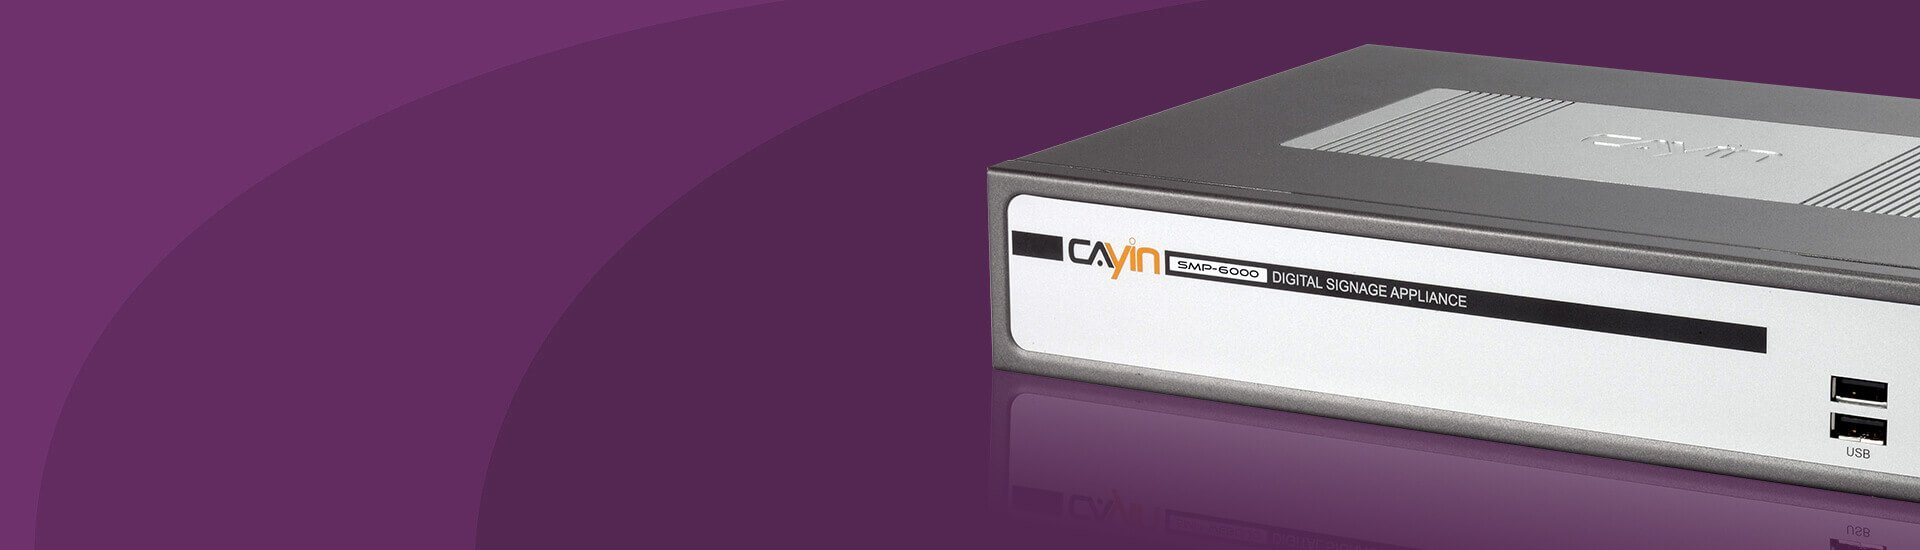 SMP-6000 Versatile Digital Signage Player with AV-in